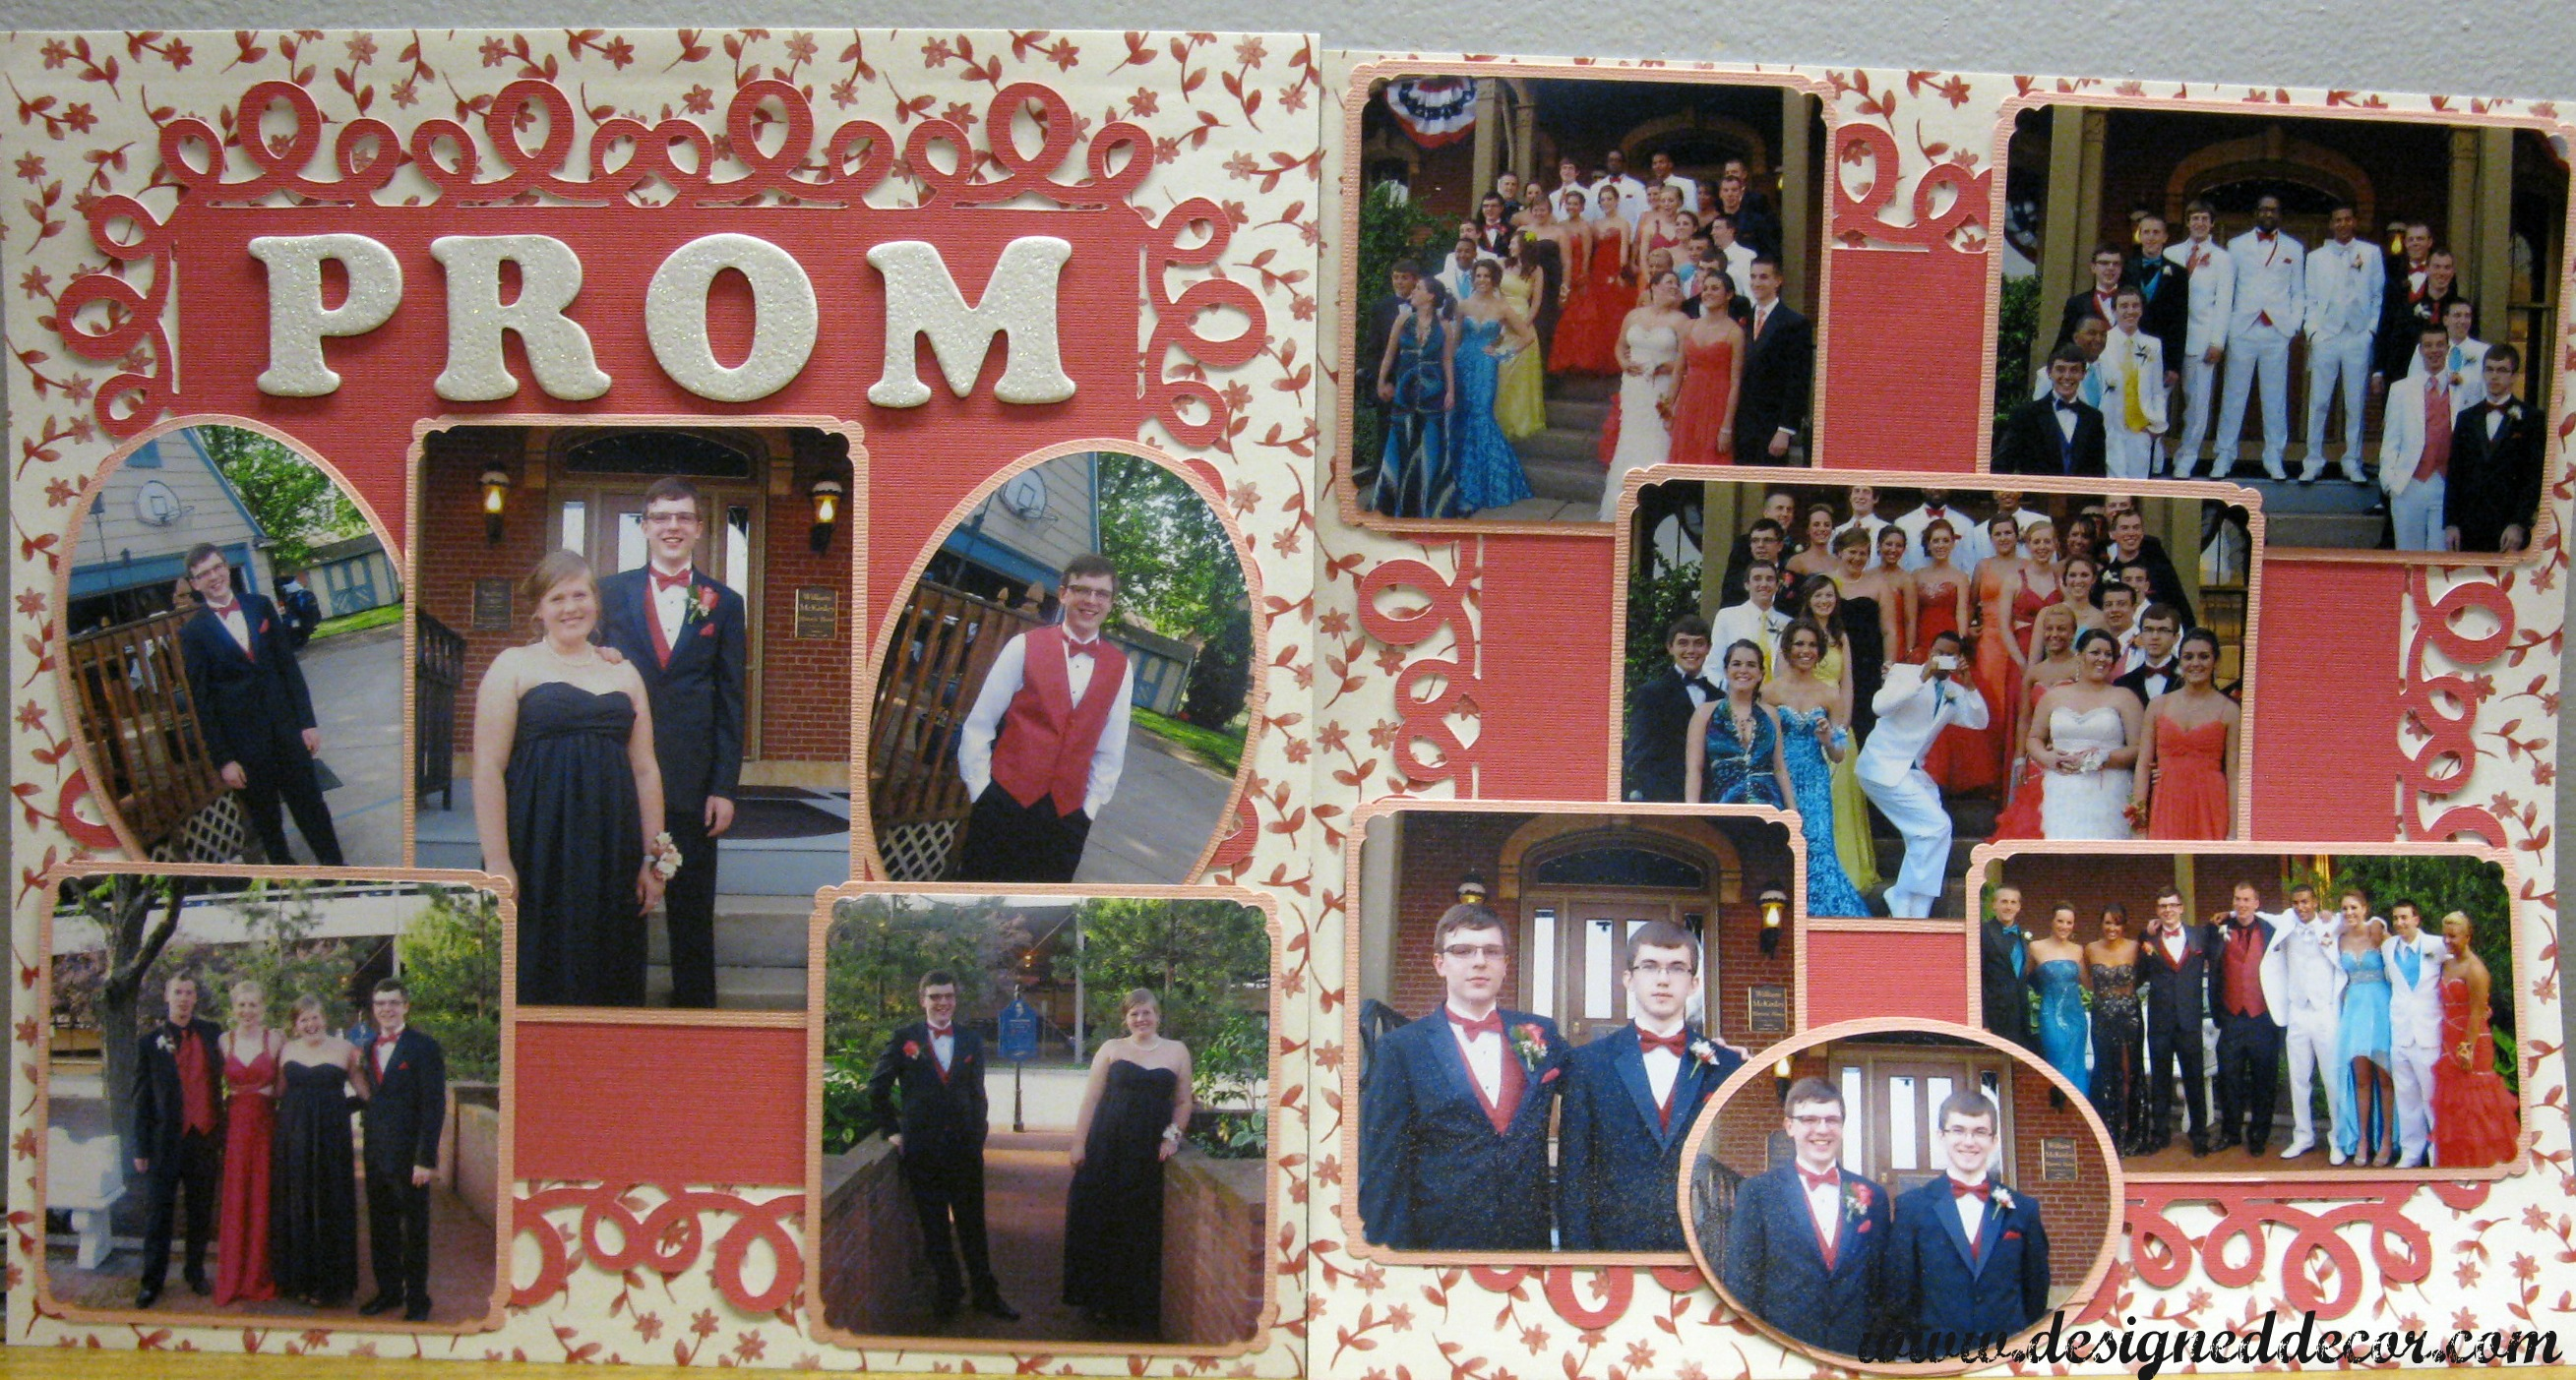 Completed The Third Sons Scrapbook Designed Decor